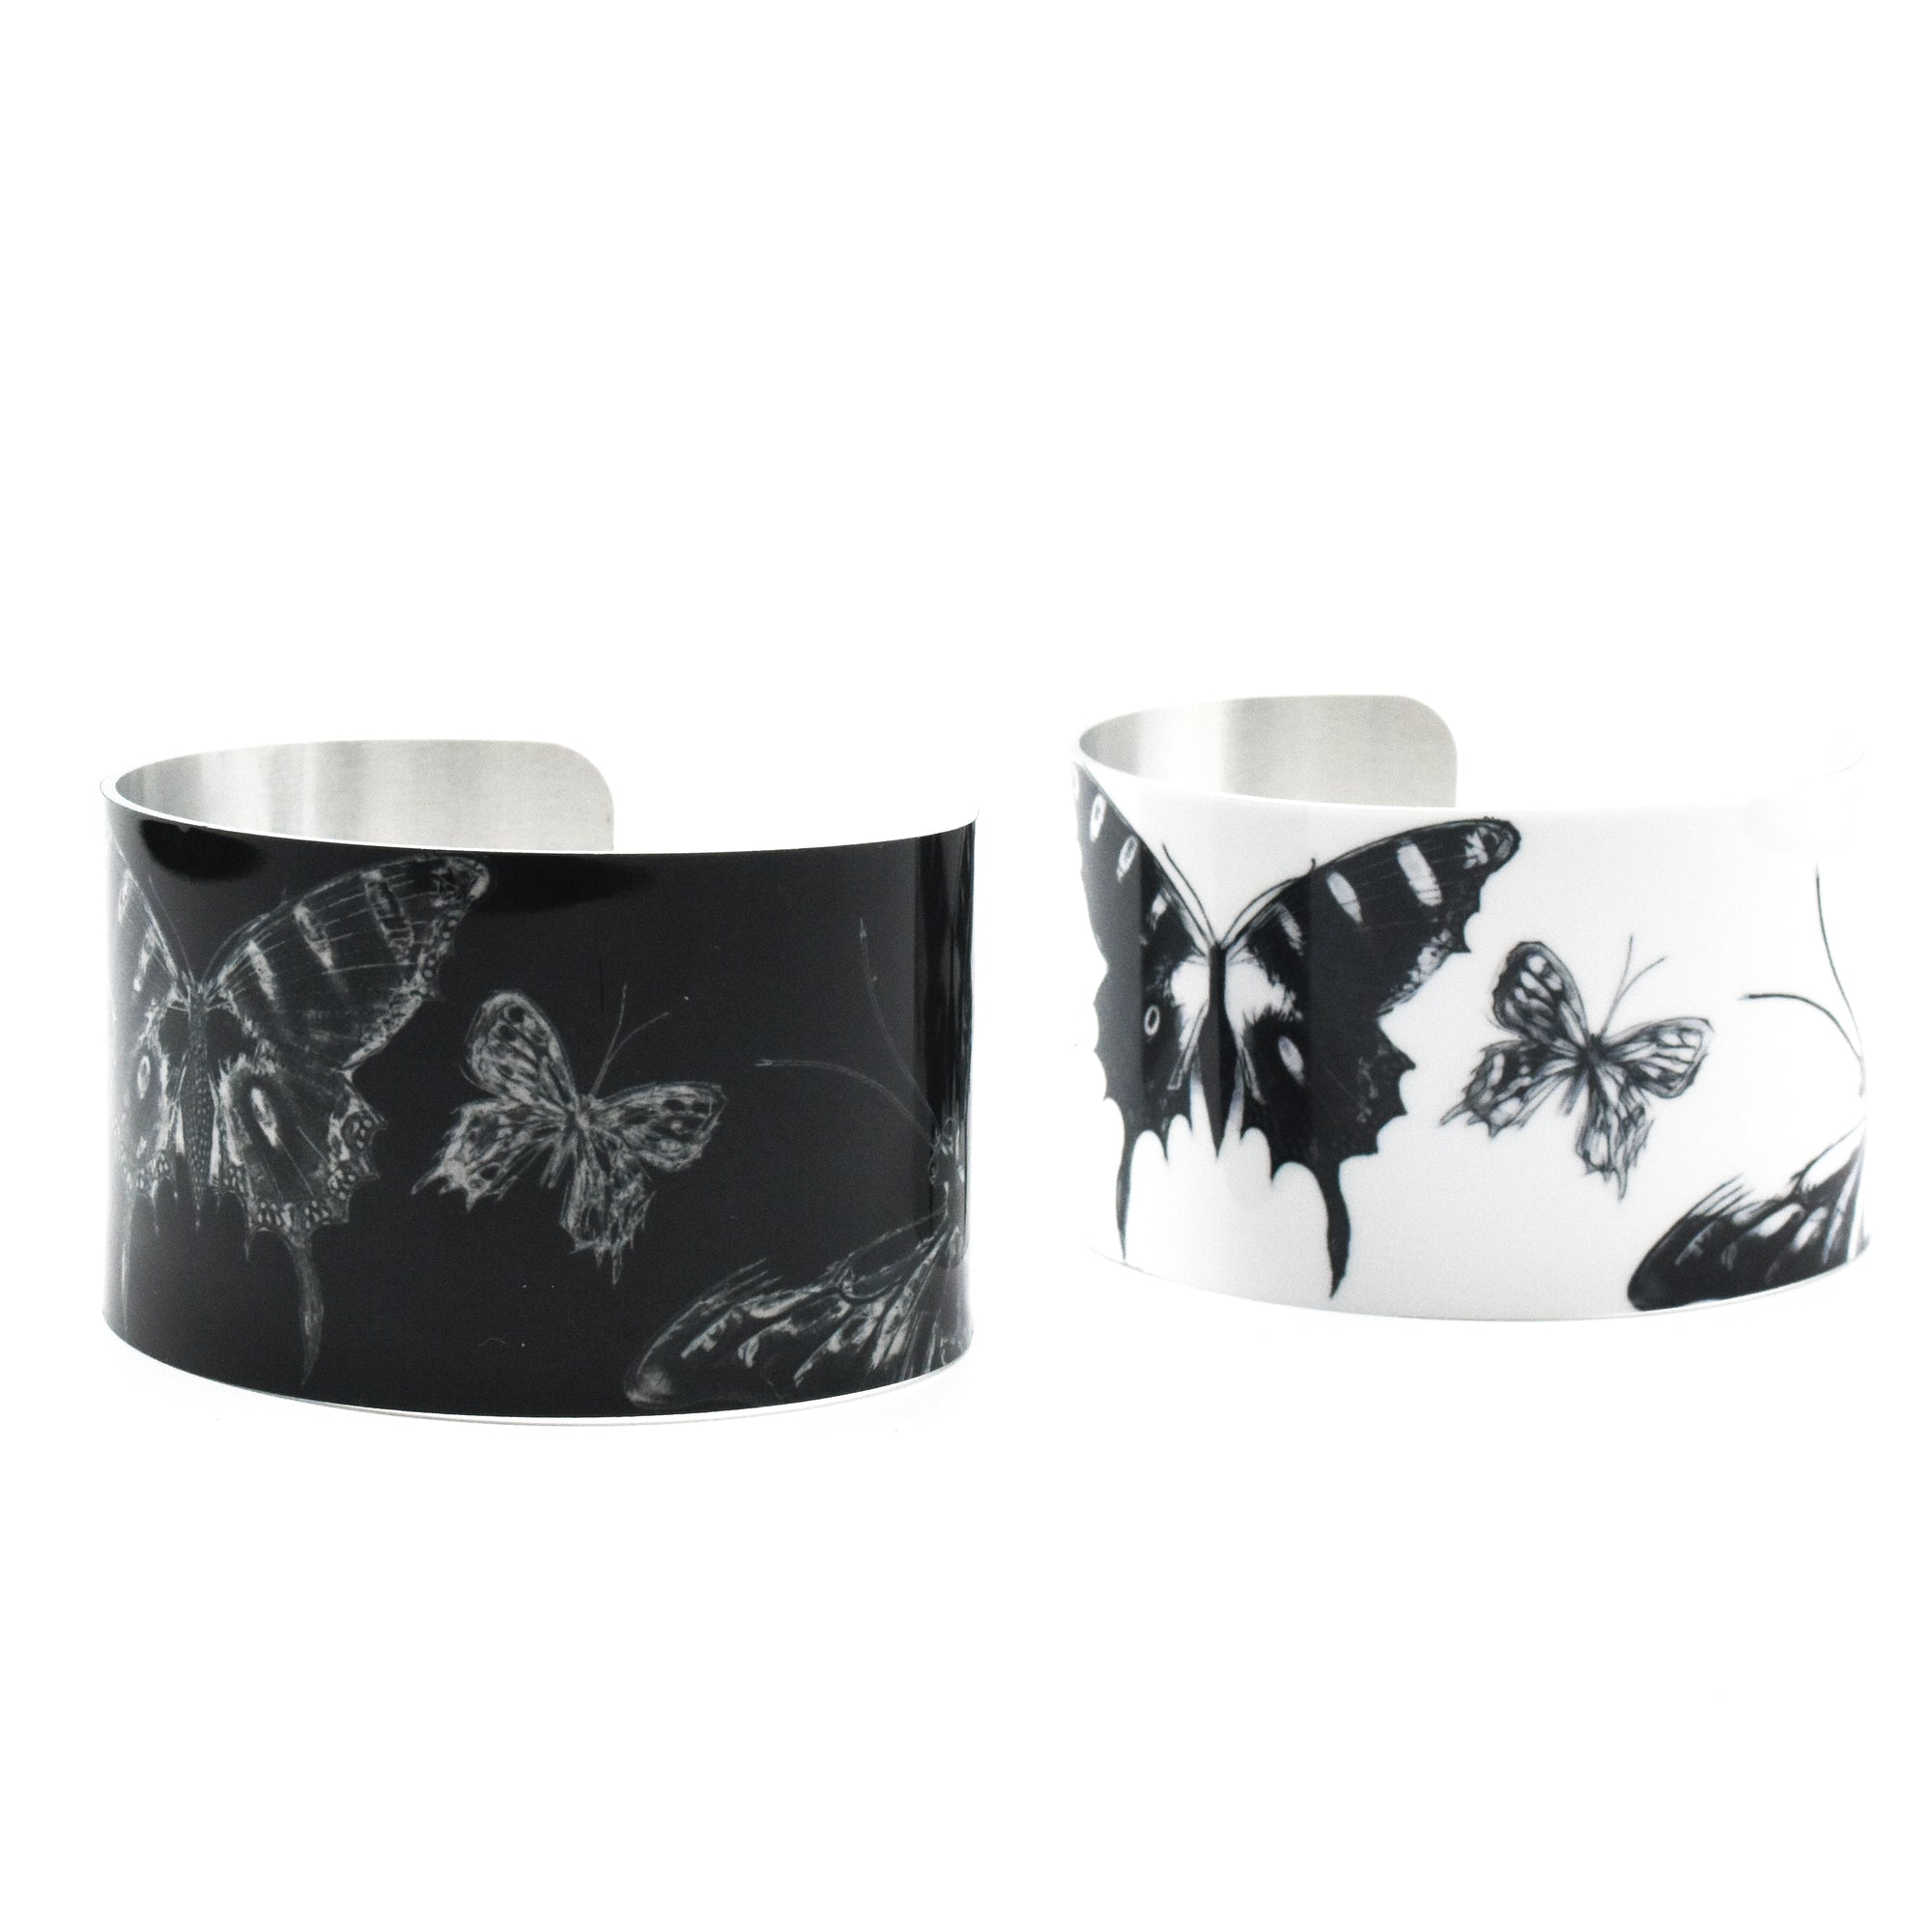 Standard View of Expressive Papillon Cuff Bracelets | Wear the Wonder